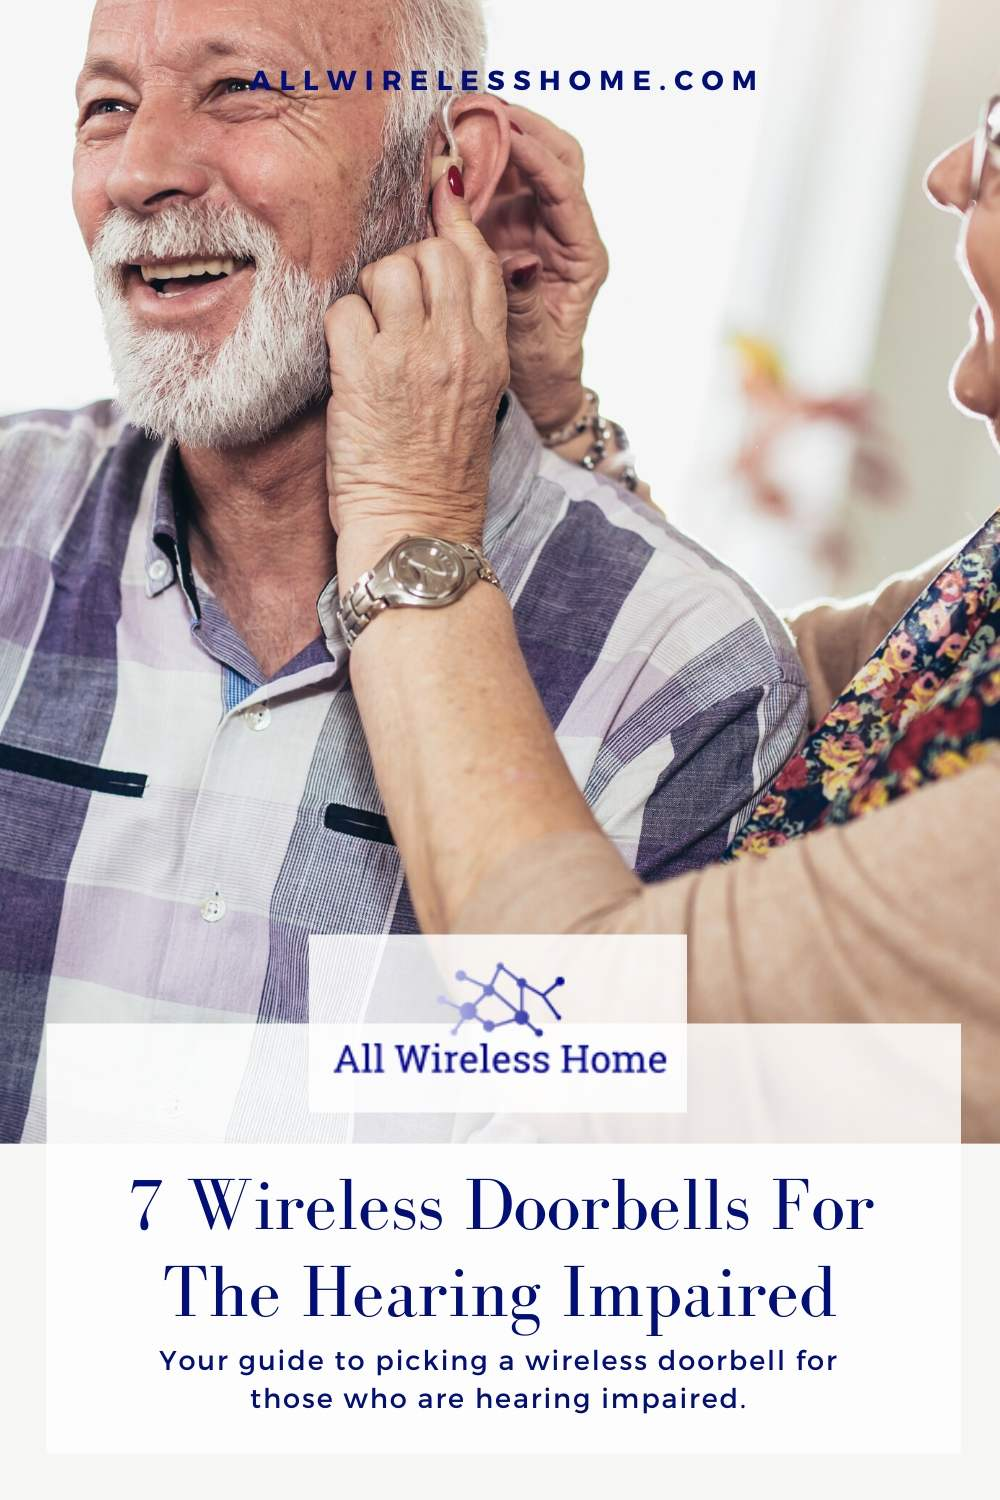 7 Wireless Doorbells For The Hearing Impaired